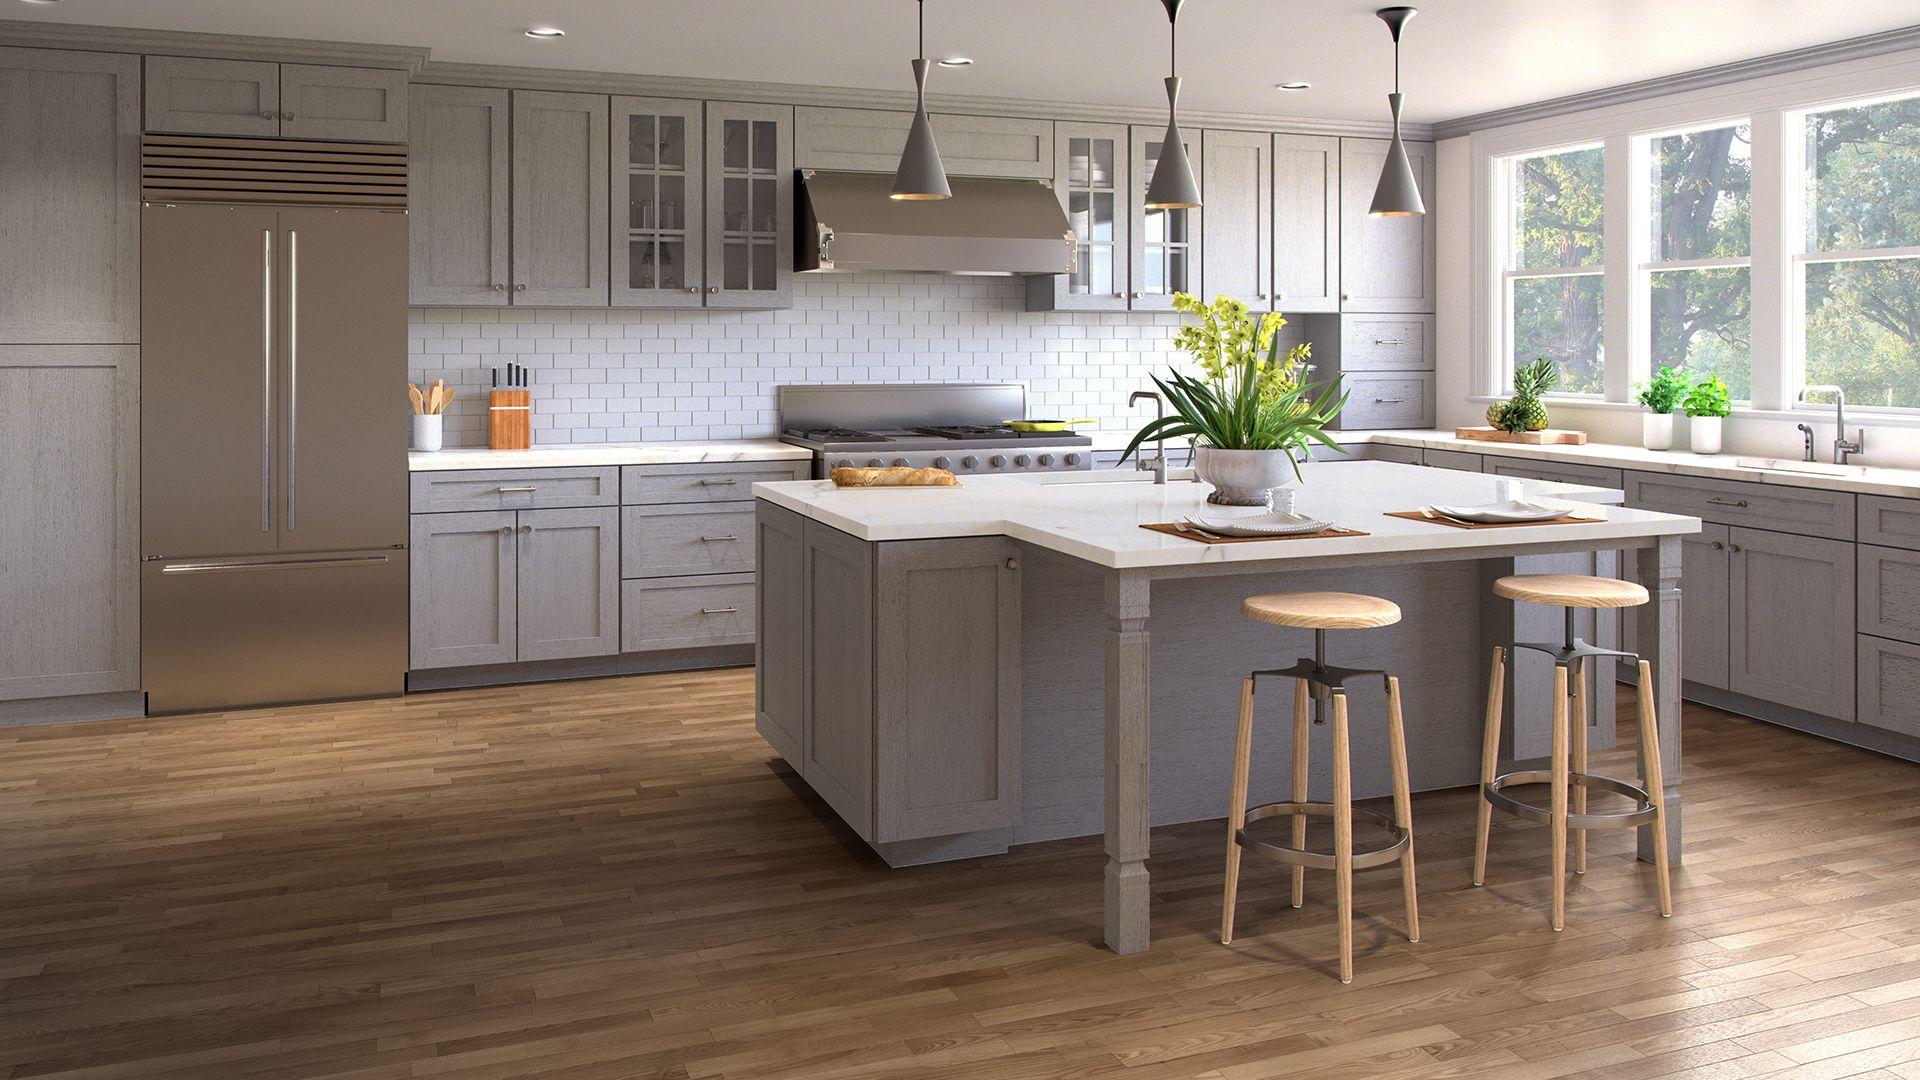 Best Nova Light Grey – Forevermark Cabinetry With Images 400 x 300